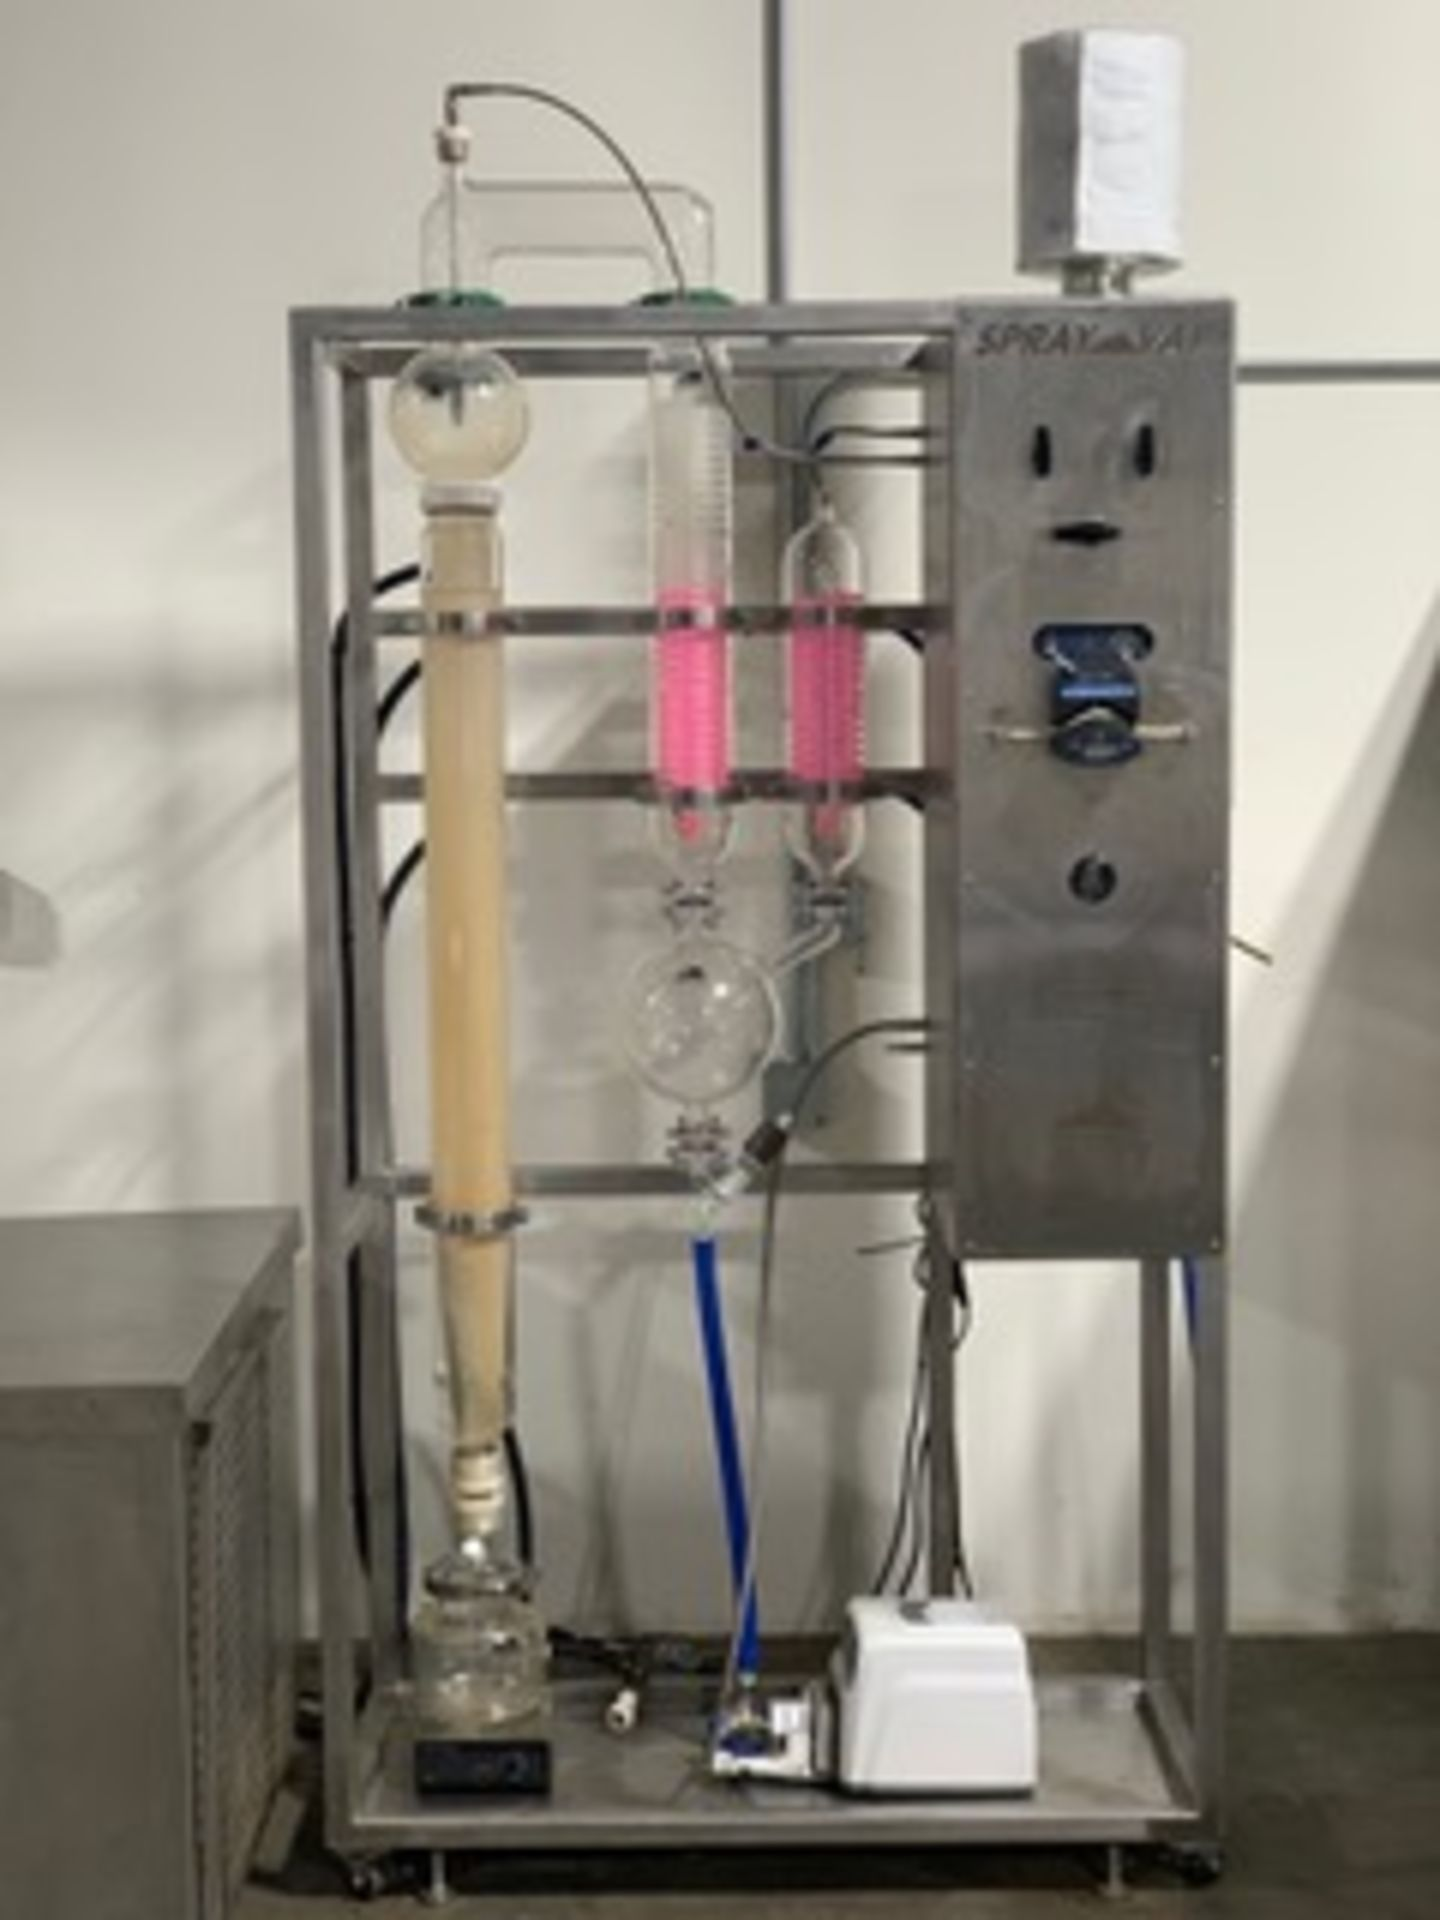 Used-Colorado Extraction Systems SprayVap System w/TripleXtract System. Model SV20. - Image 20 of 27